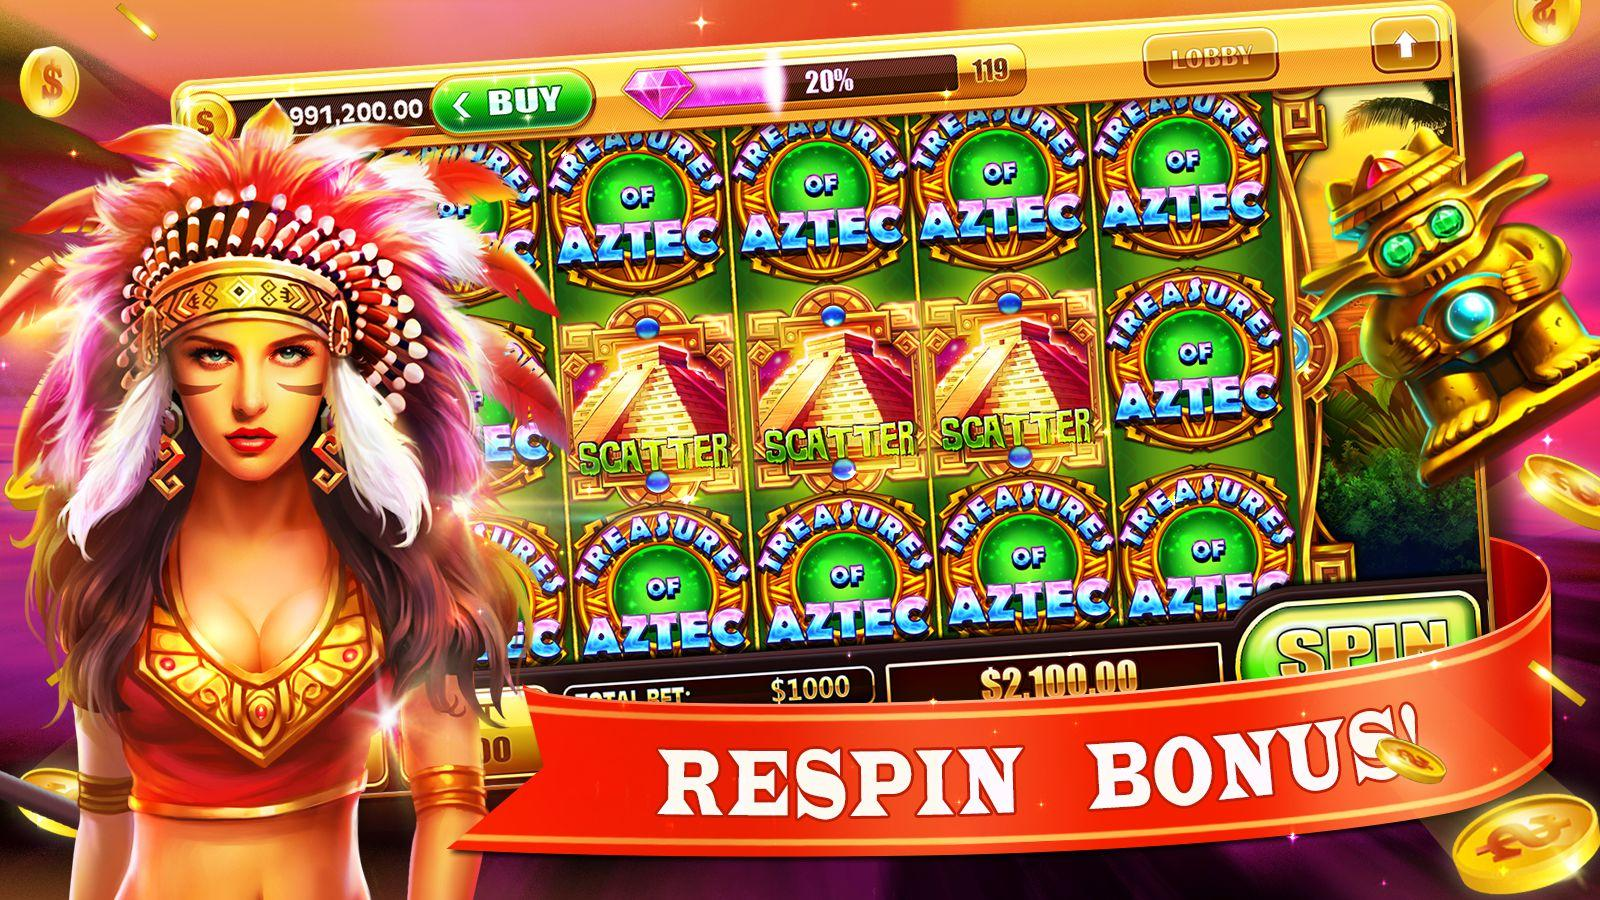 Wild Girls Slot - Win Big Playing Online Casino Games